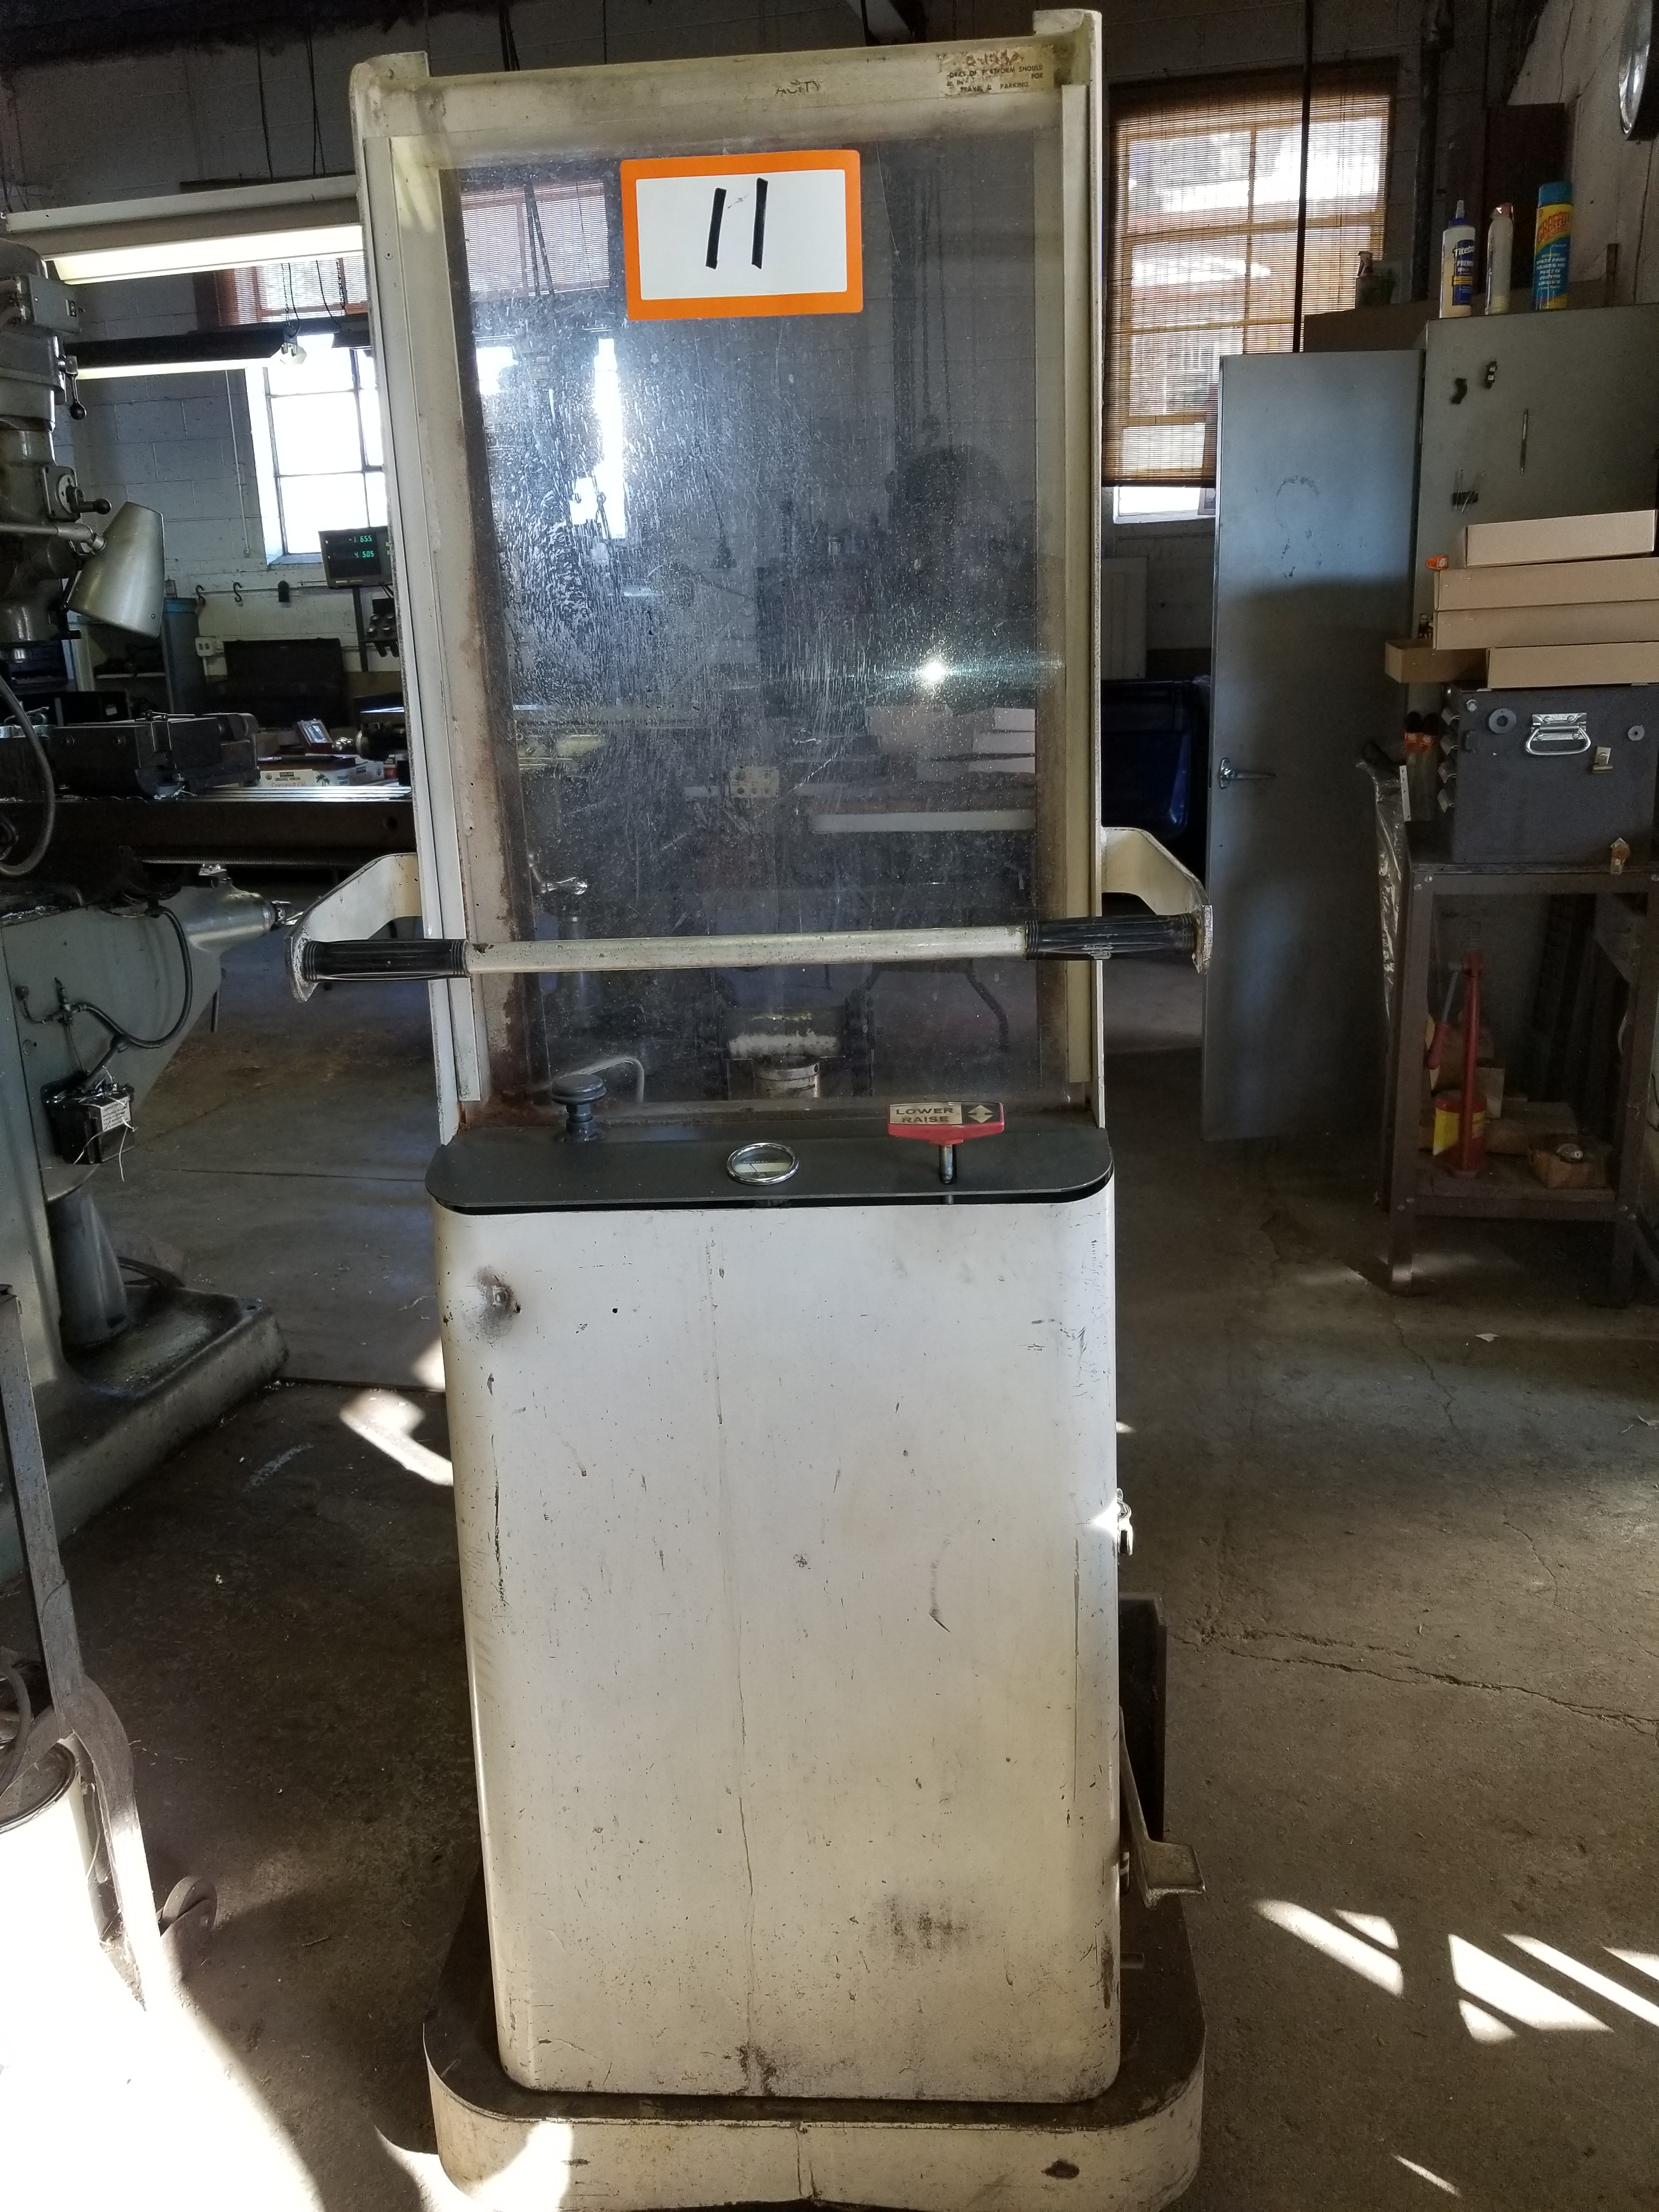 Lot 11 - Crown B-57 Hydraulic Walk Behind Pallet Stacker with 1,500 lbs. Capacity